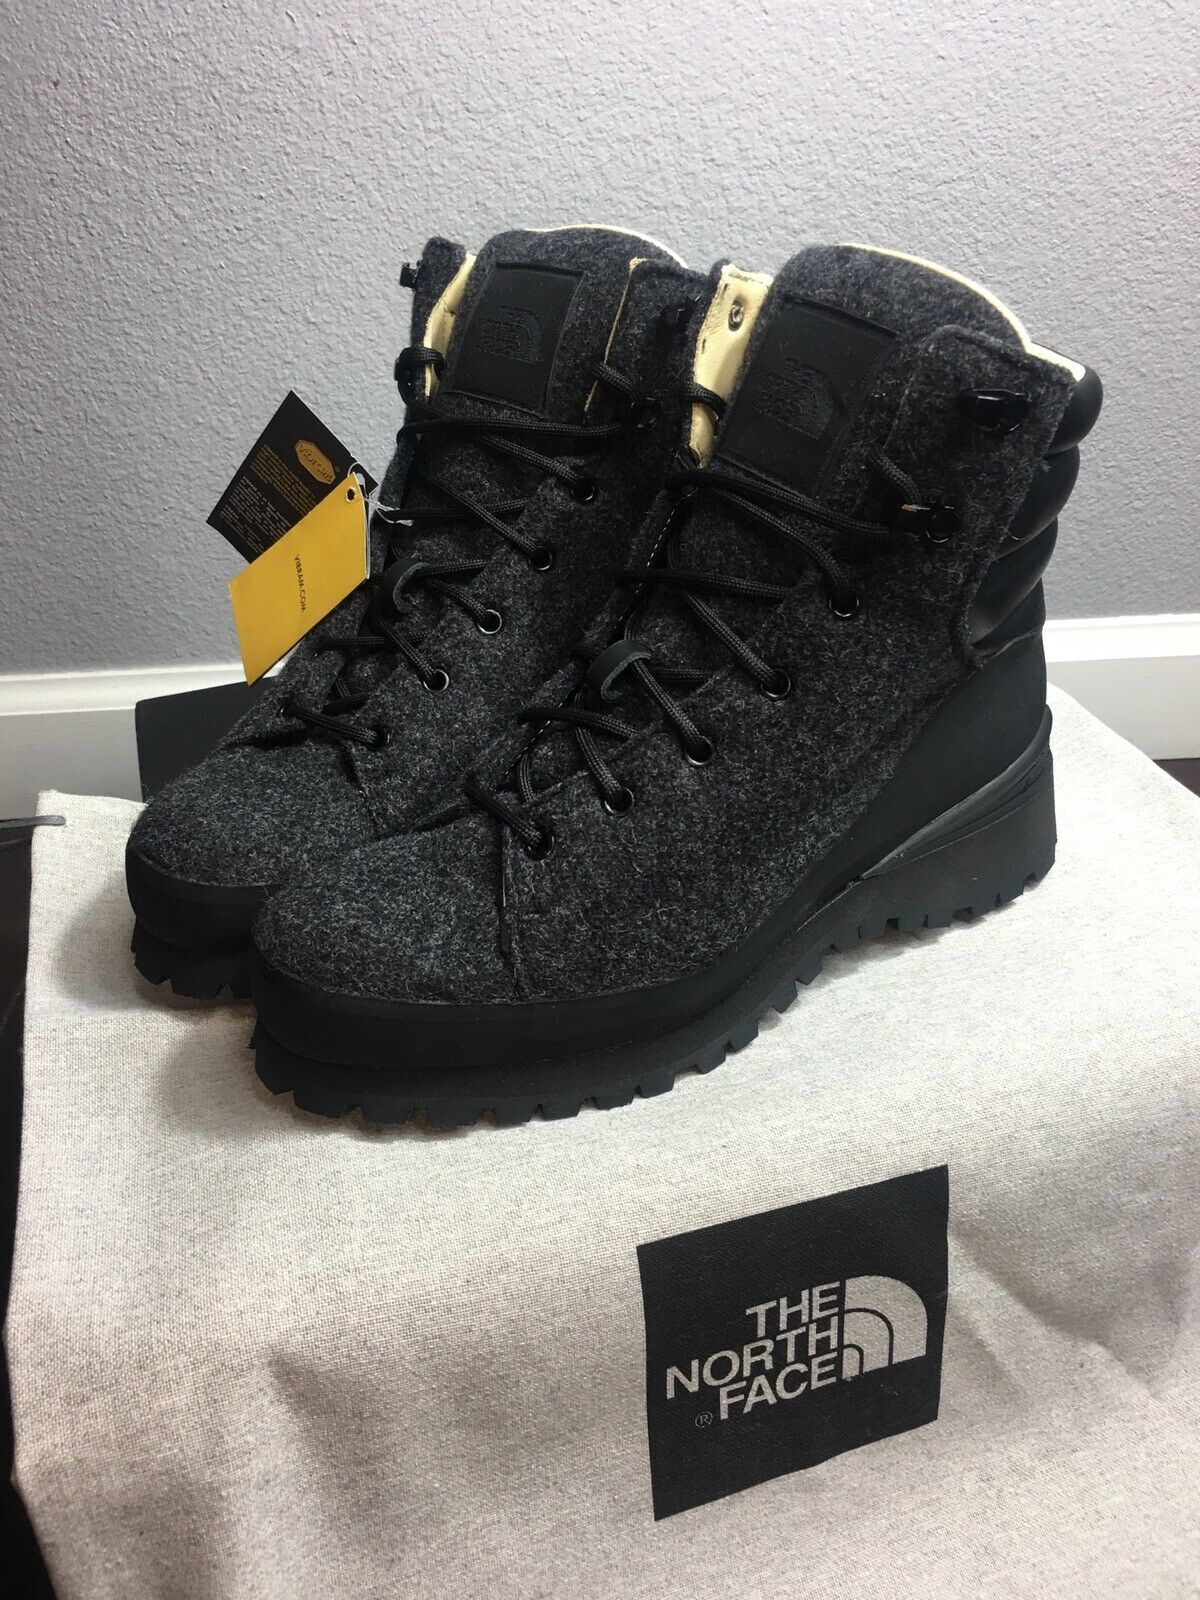 The North Face Women Cryos Hiker Wool Boots W Vibrant Rubber Sole Size 6.5  450